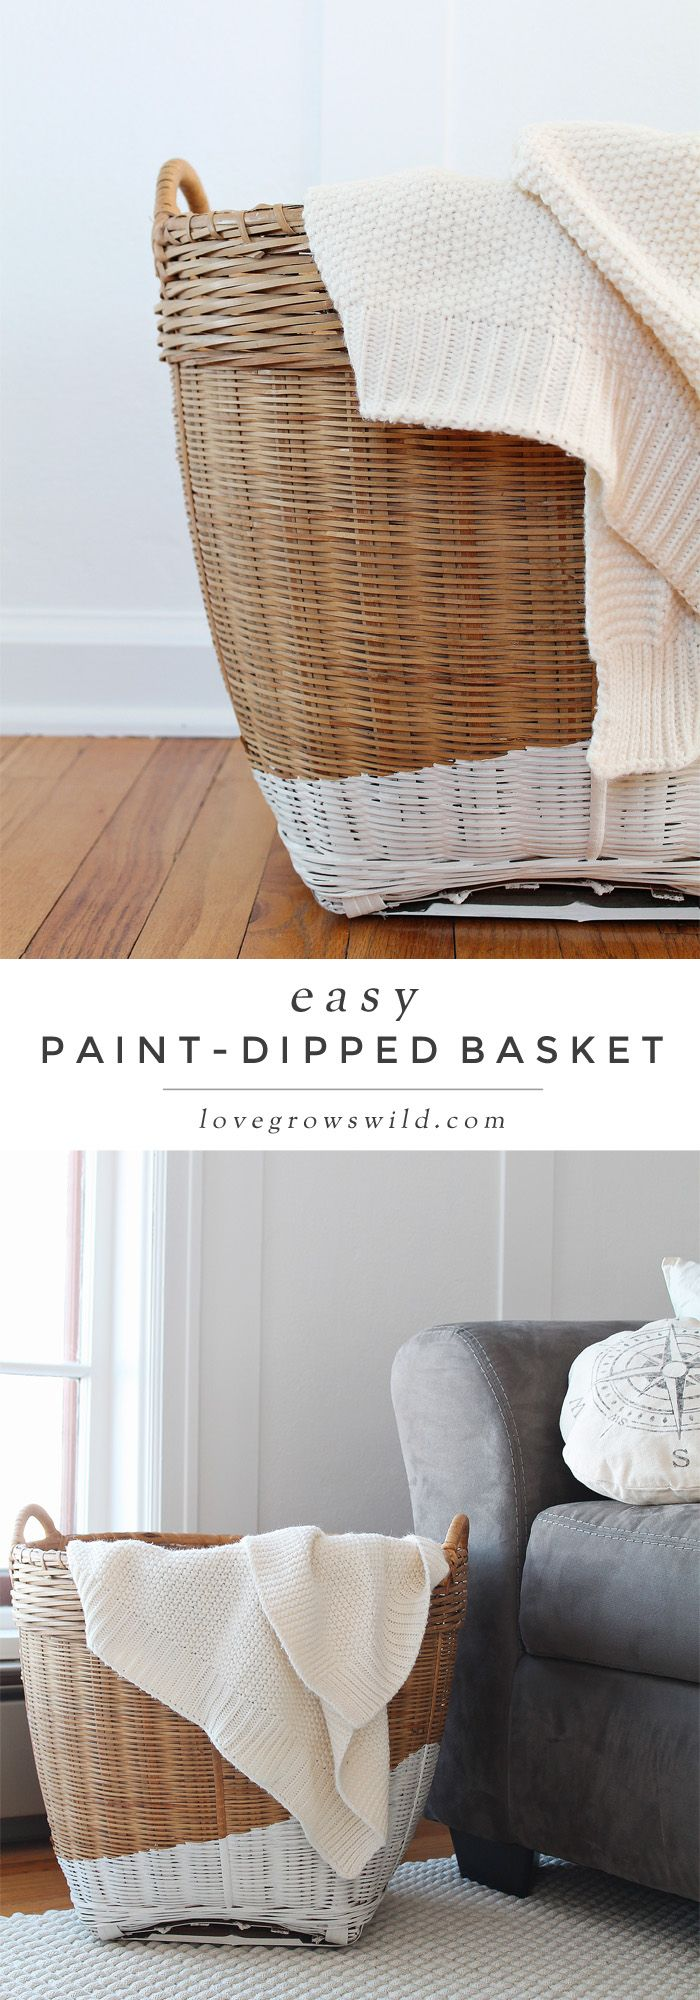 The EASY way to get the paint-dipped look! These stylish baskets are perfect for storing blankets, magazines, toys, and more. Get the details at LoveGrowsWild.com